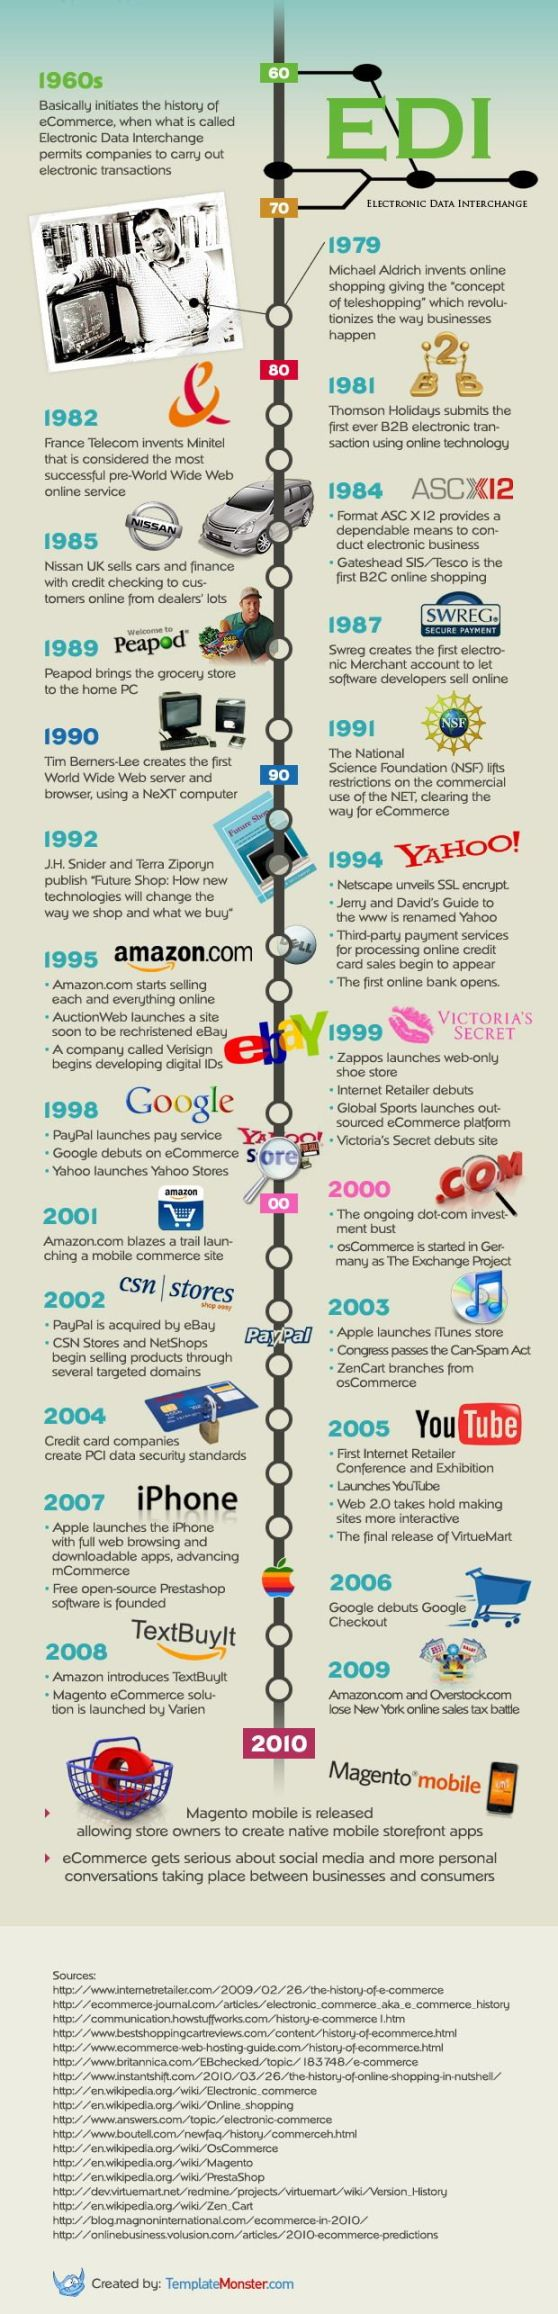 History of e-commerce - infographic